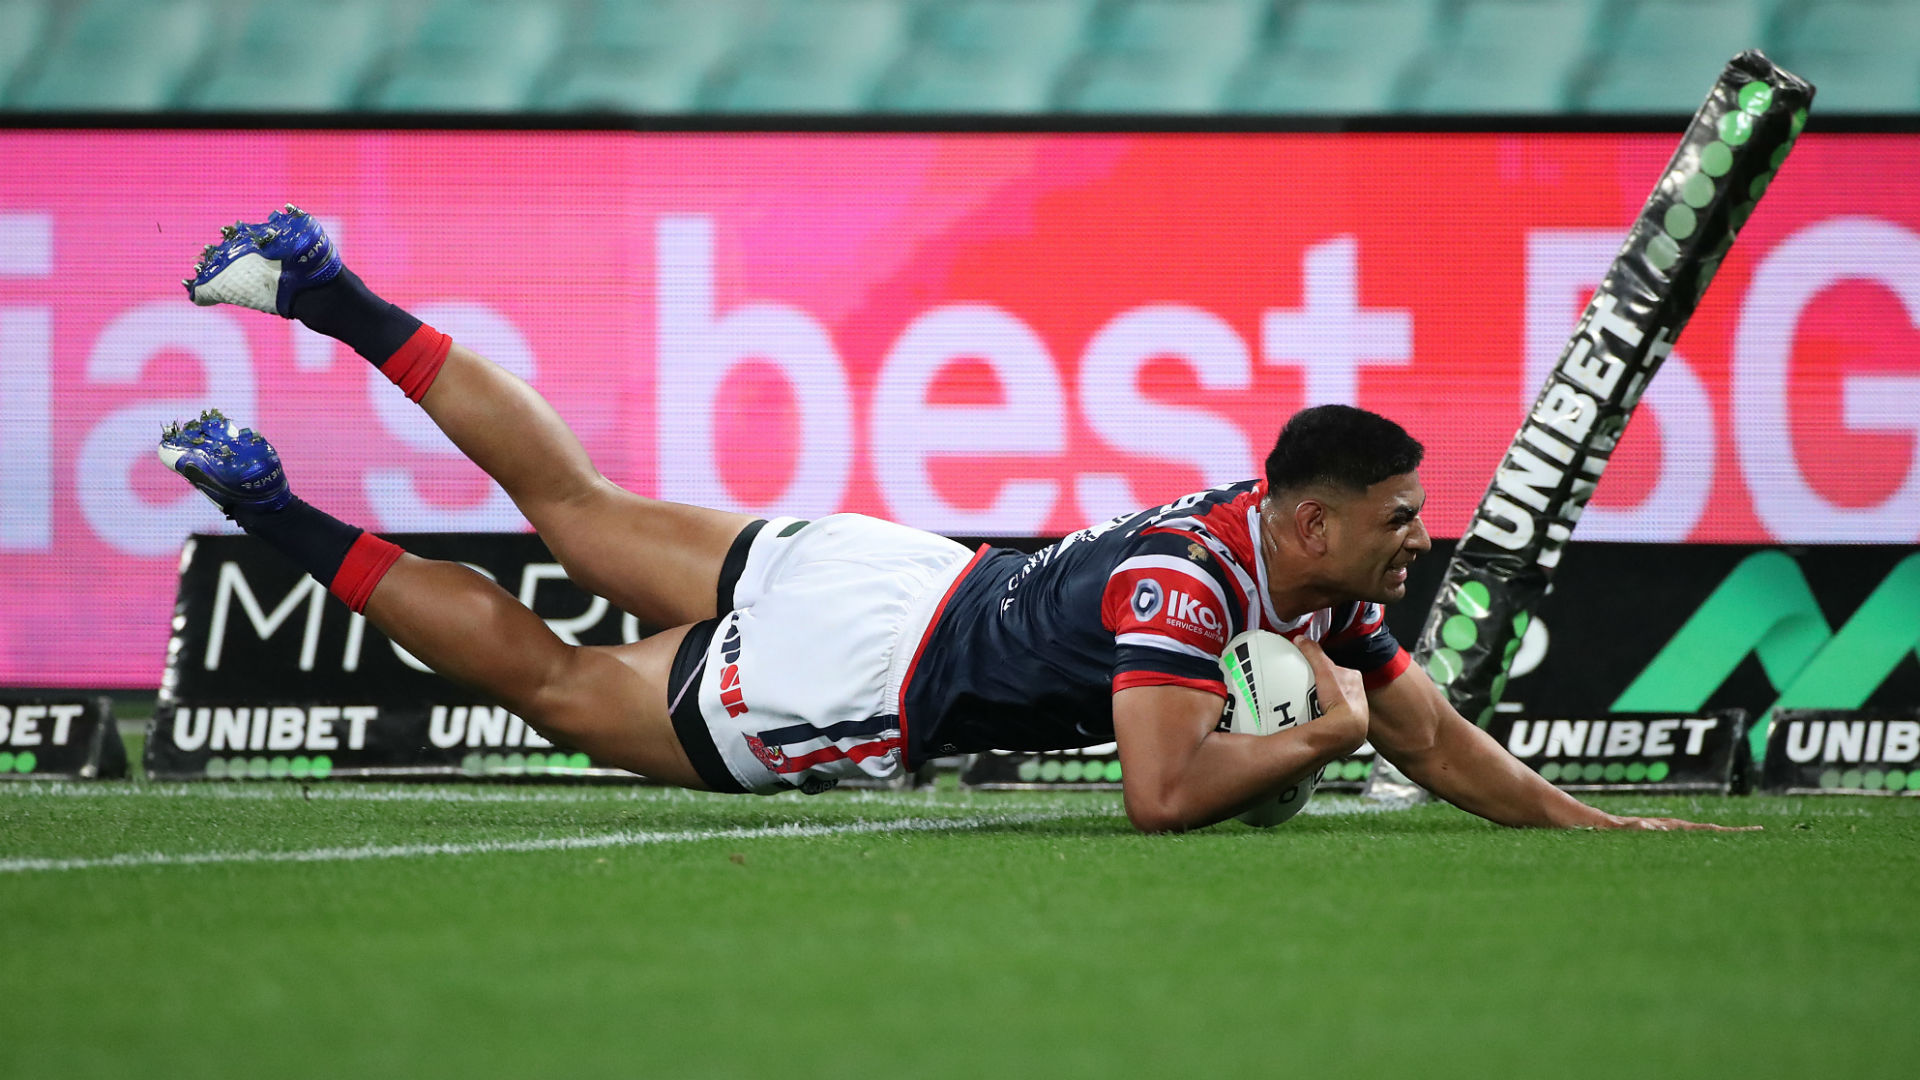 Tupou scores 100th NRL try as Roosters end Knights' top-four hopes